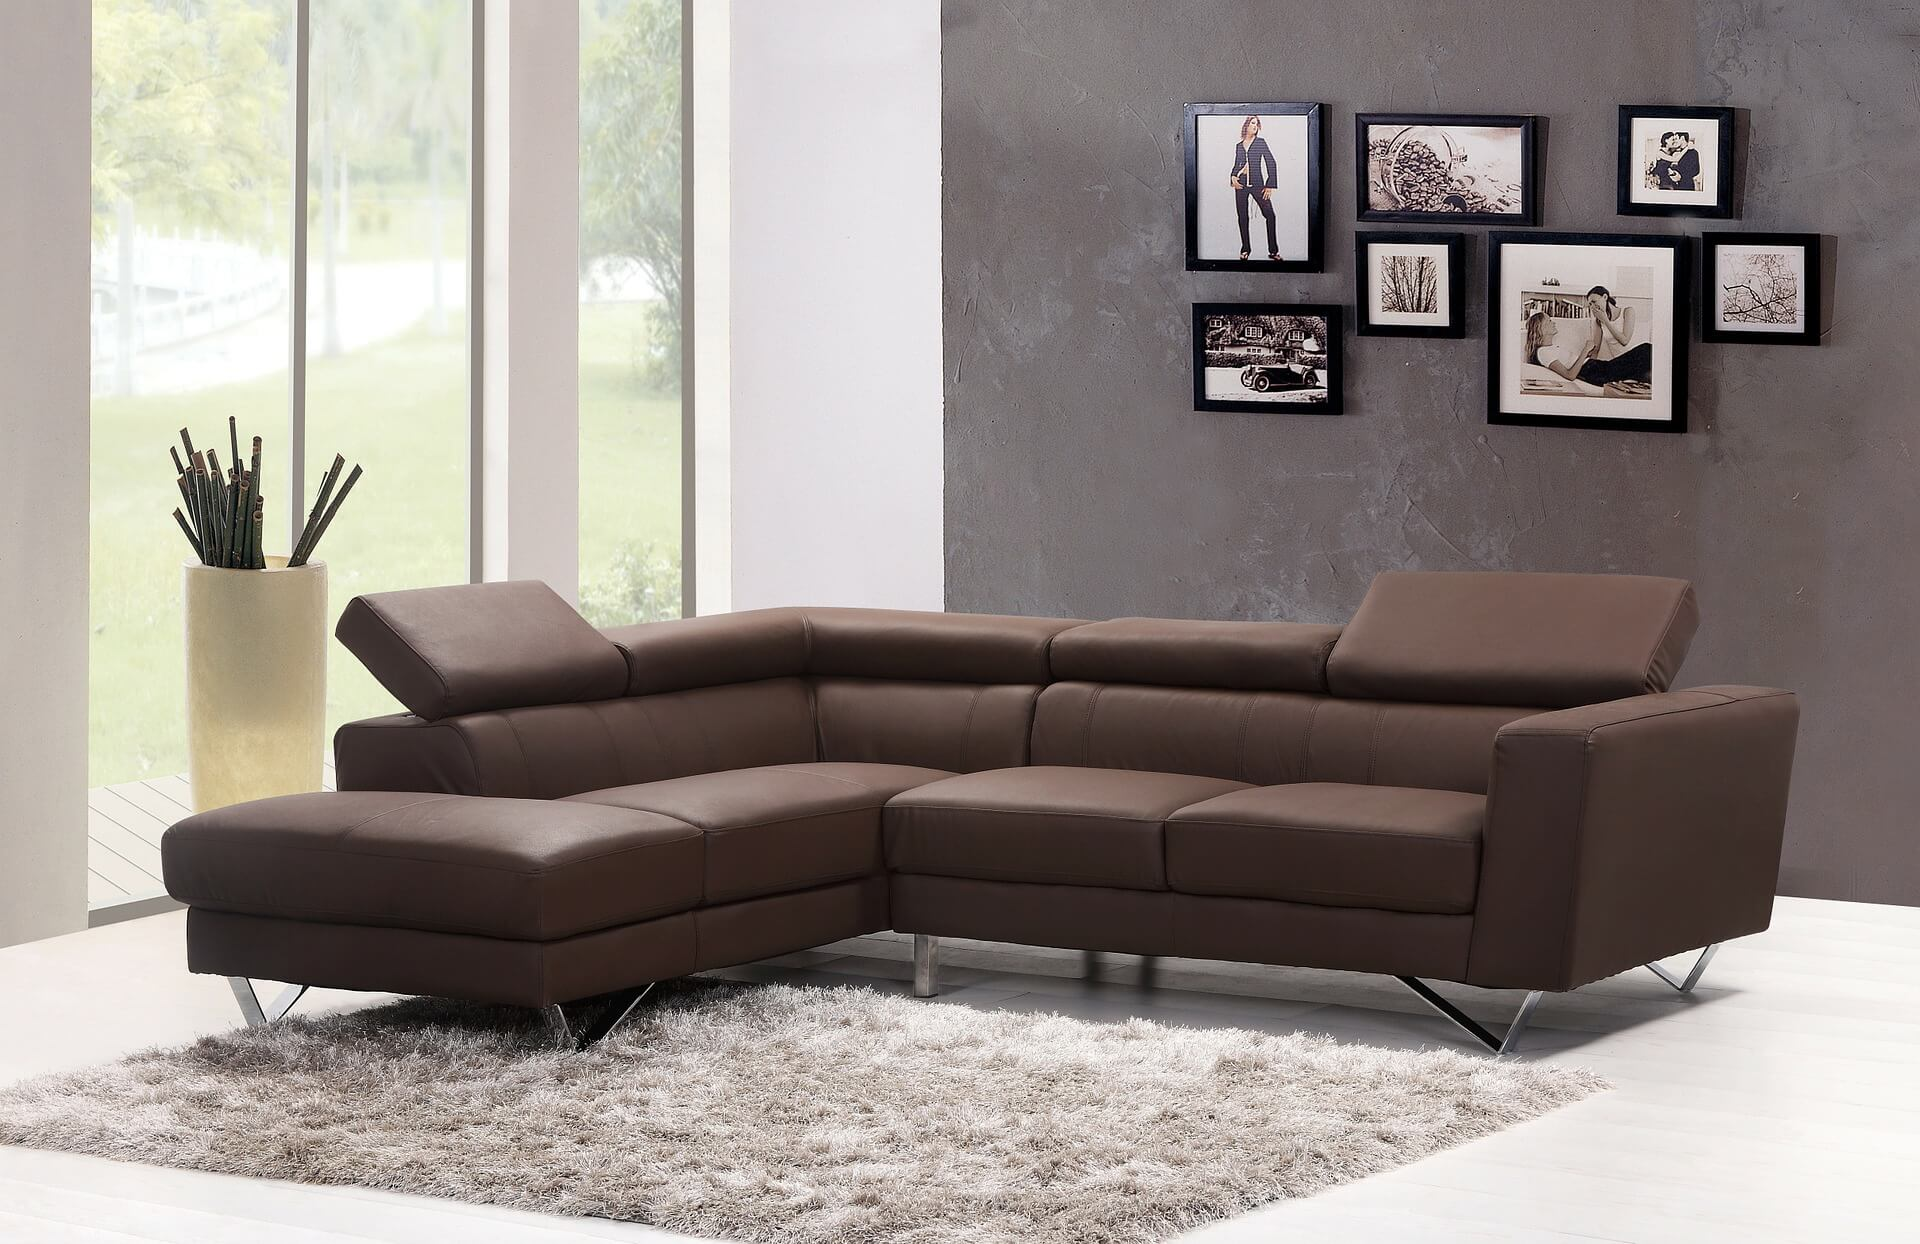 4 Biggest Design Mistakes People Do In Their Living Rooms Interior Design Design News And Architecture Trends